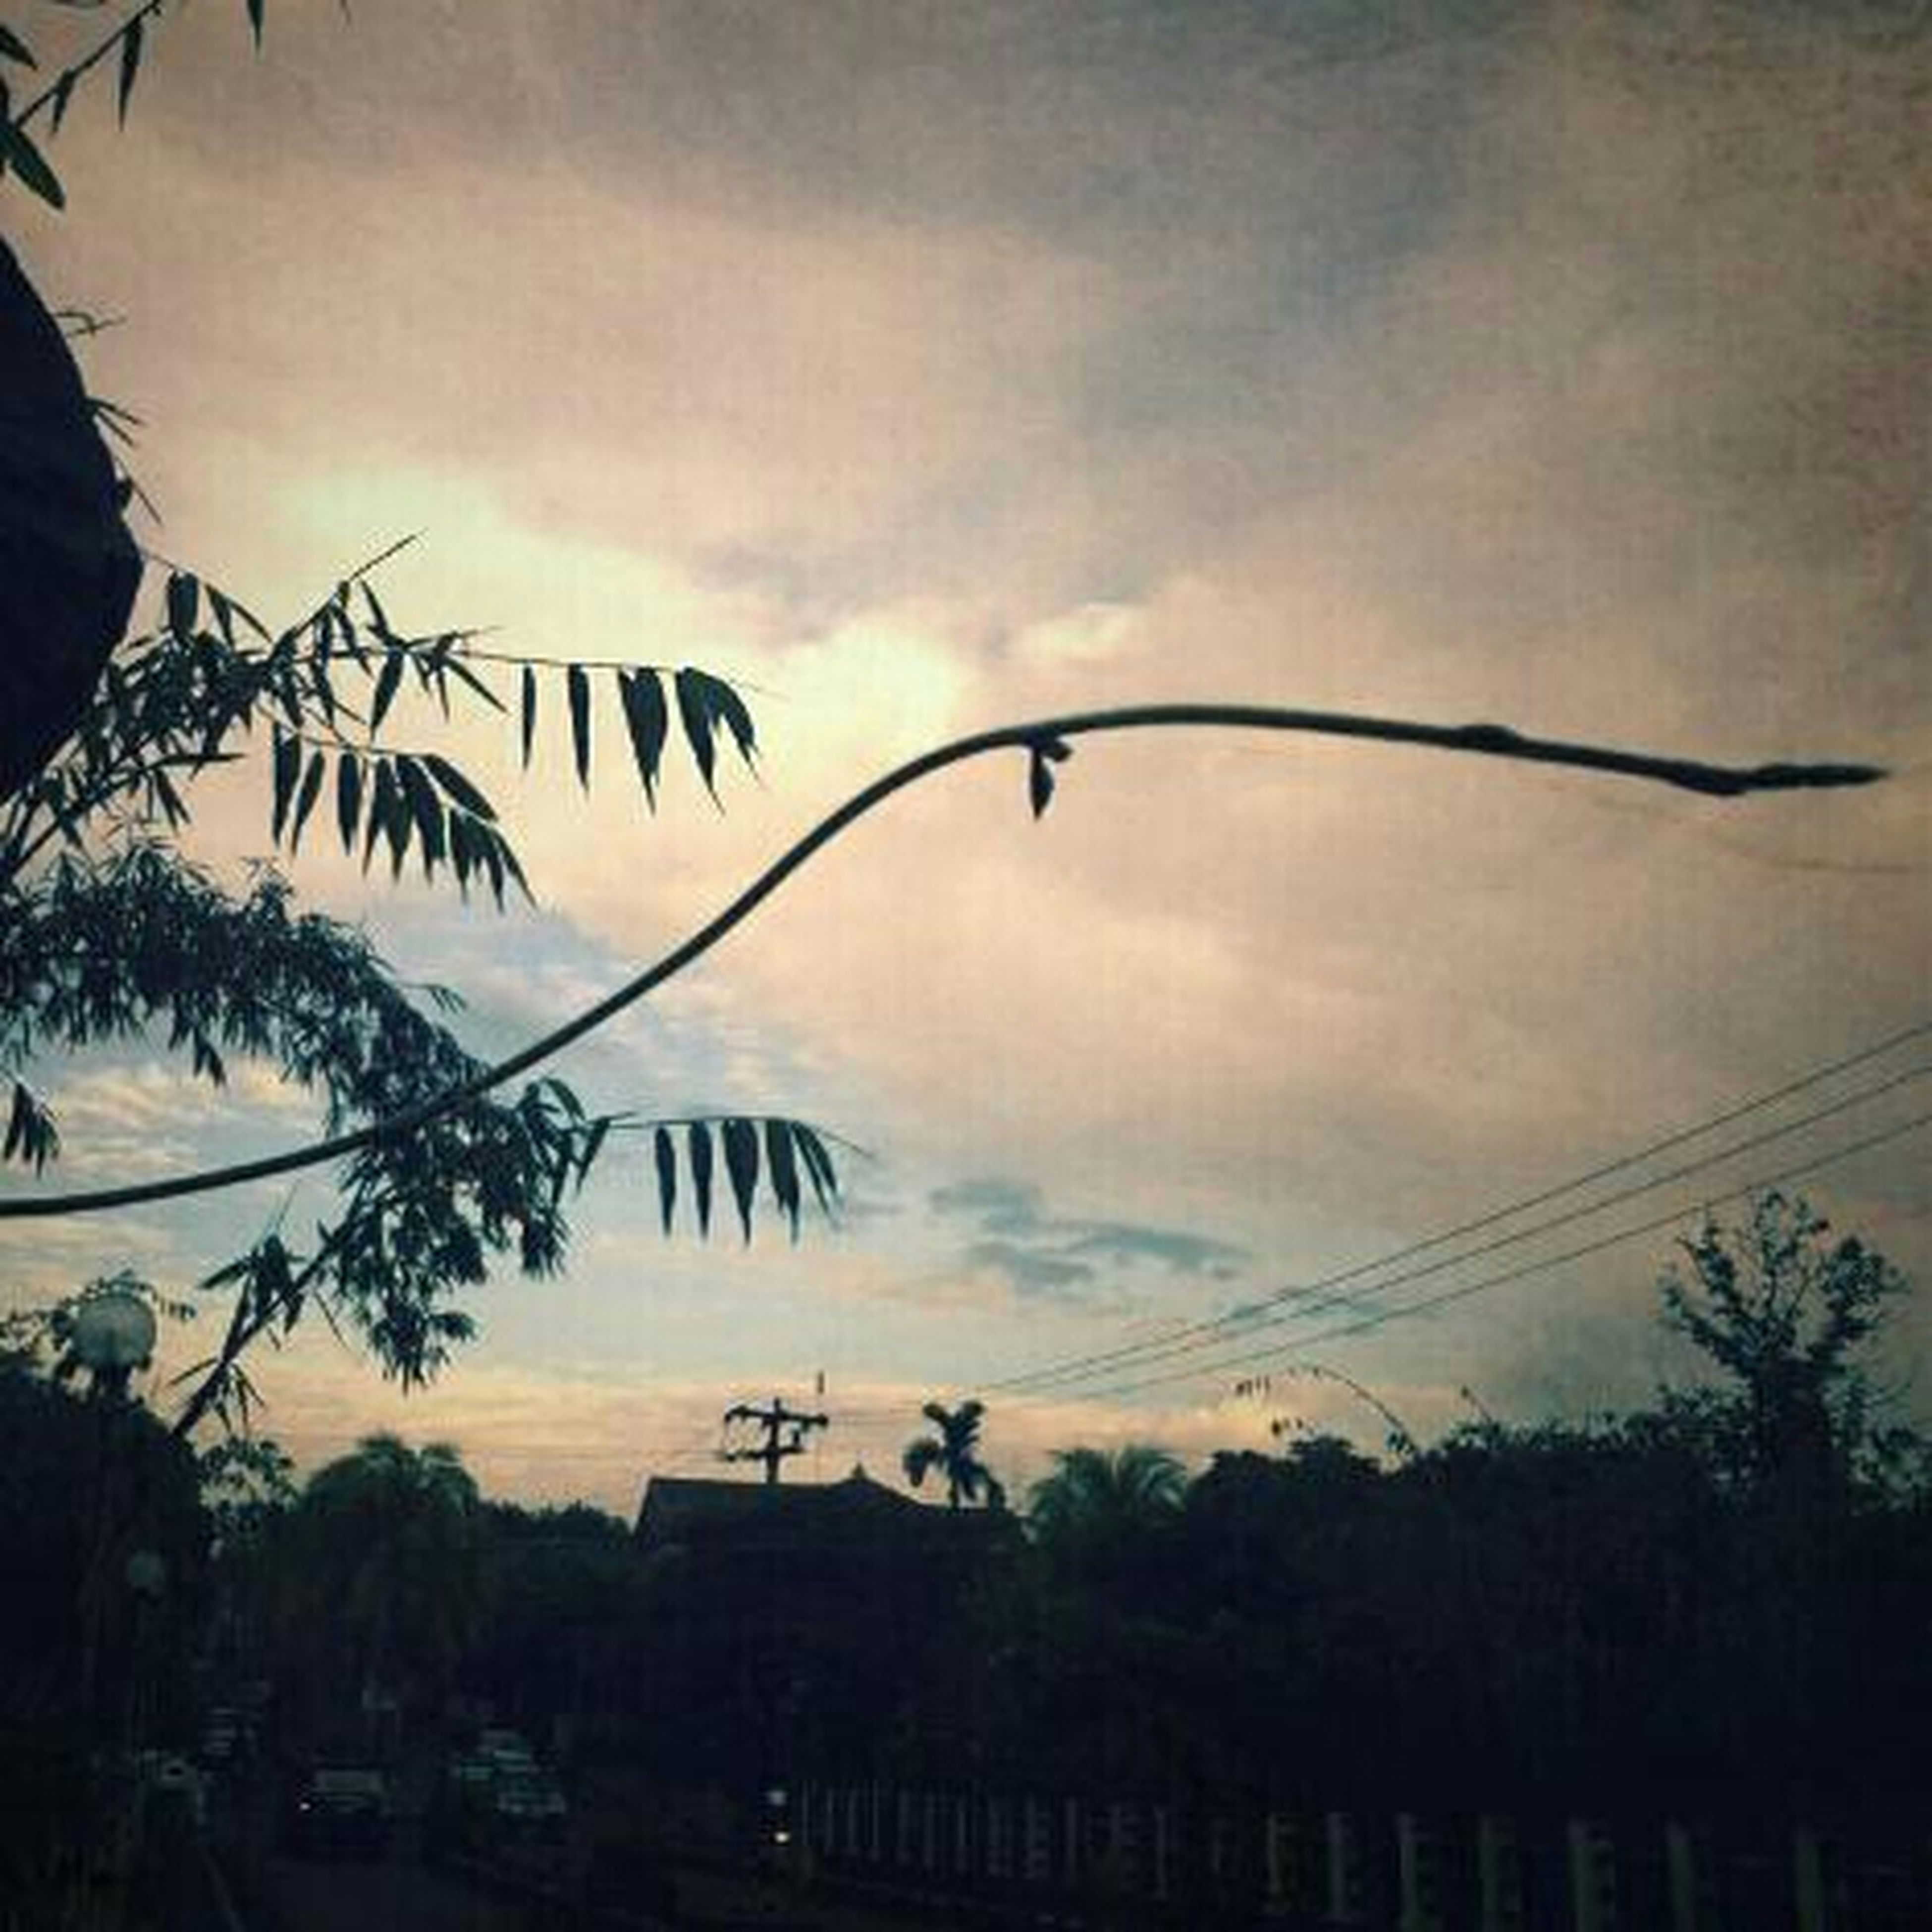 sky, sunset, silhouette, cloud - sky, cloudy, low angle view, tree, power line, cloud, nature, beauty in nature, dusk, tranquility, scenics, orange color, palm tree, tranquil scene, outdoors, cable, dramatic sky